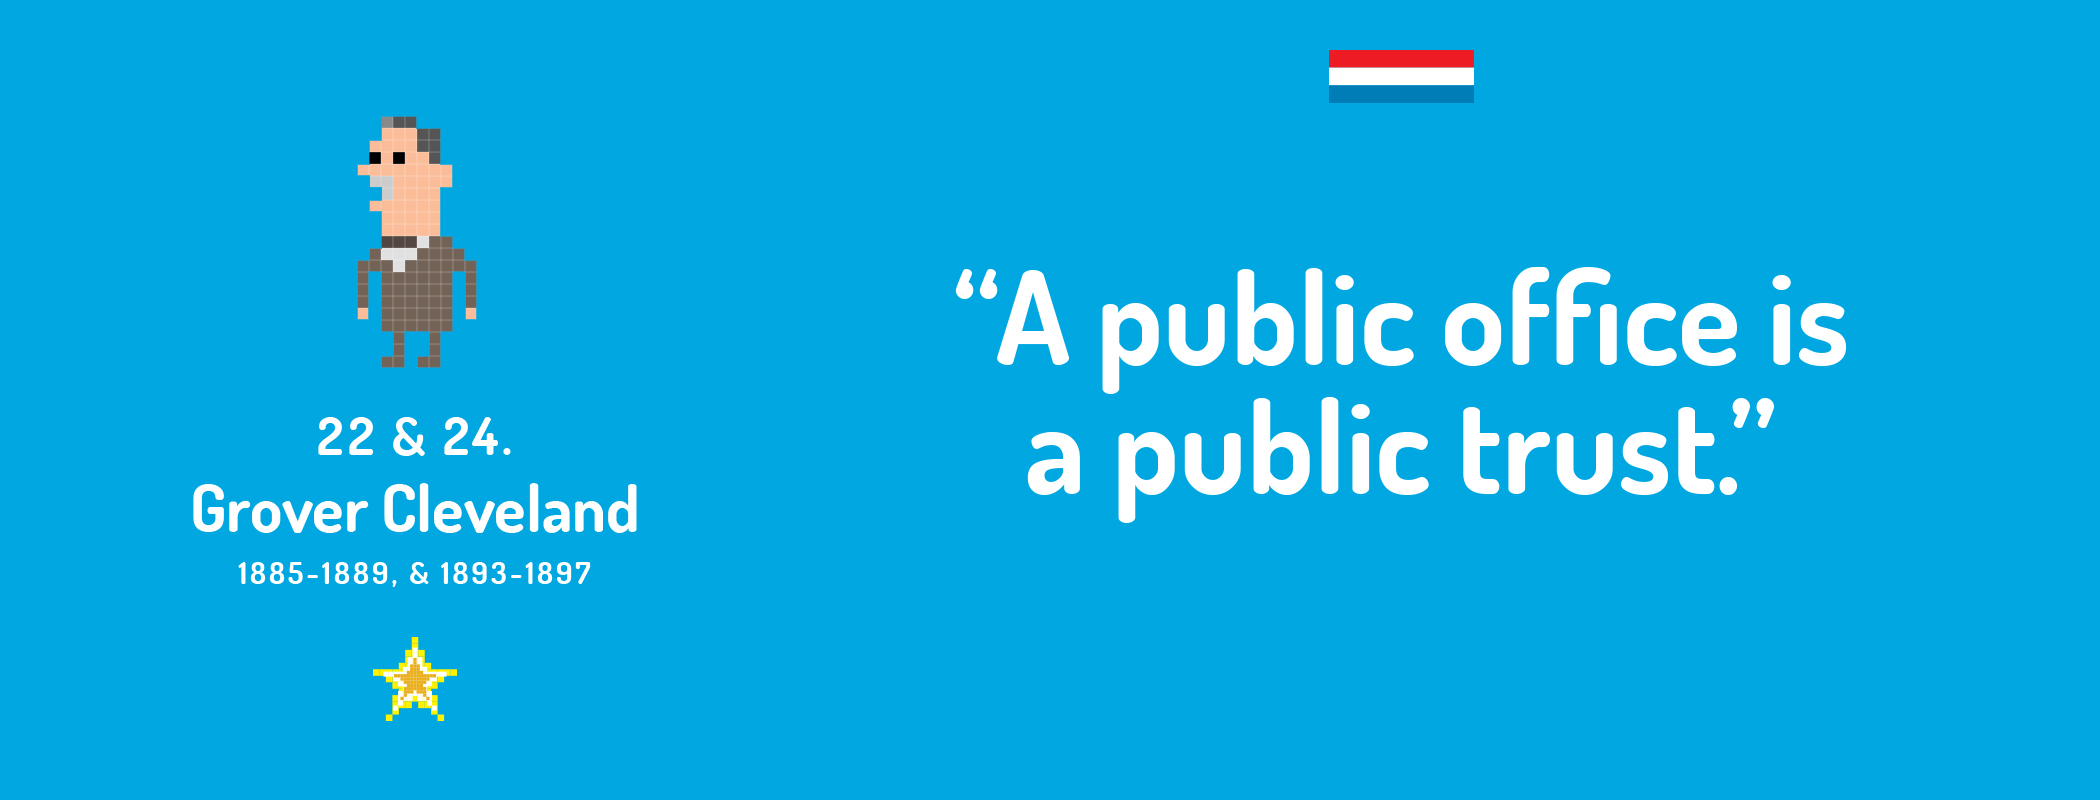 A public office is a public trust.